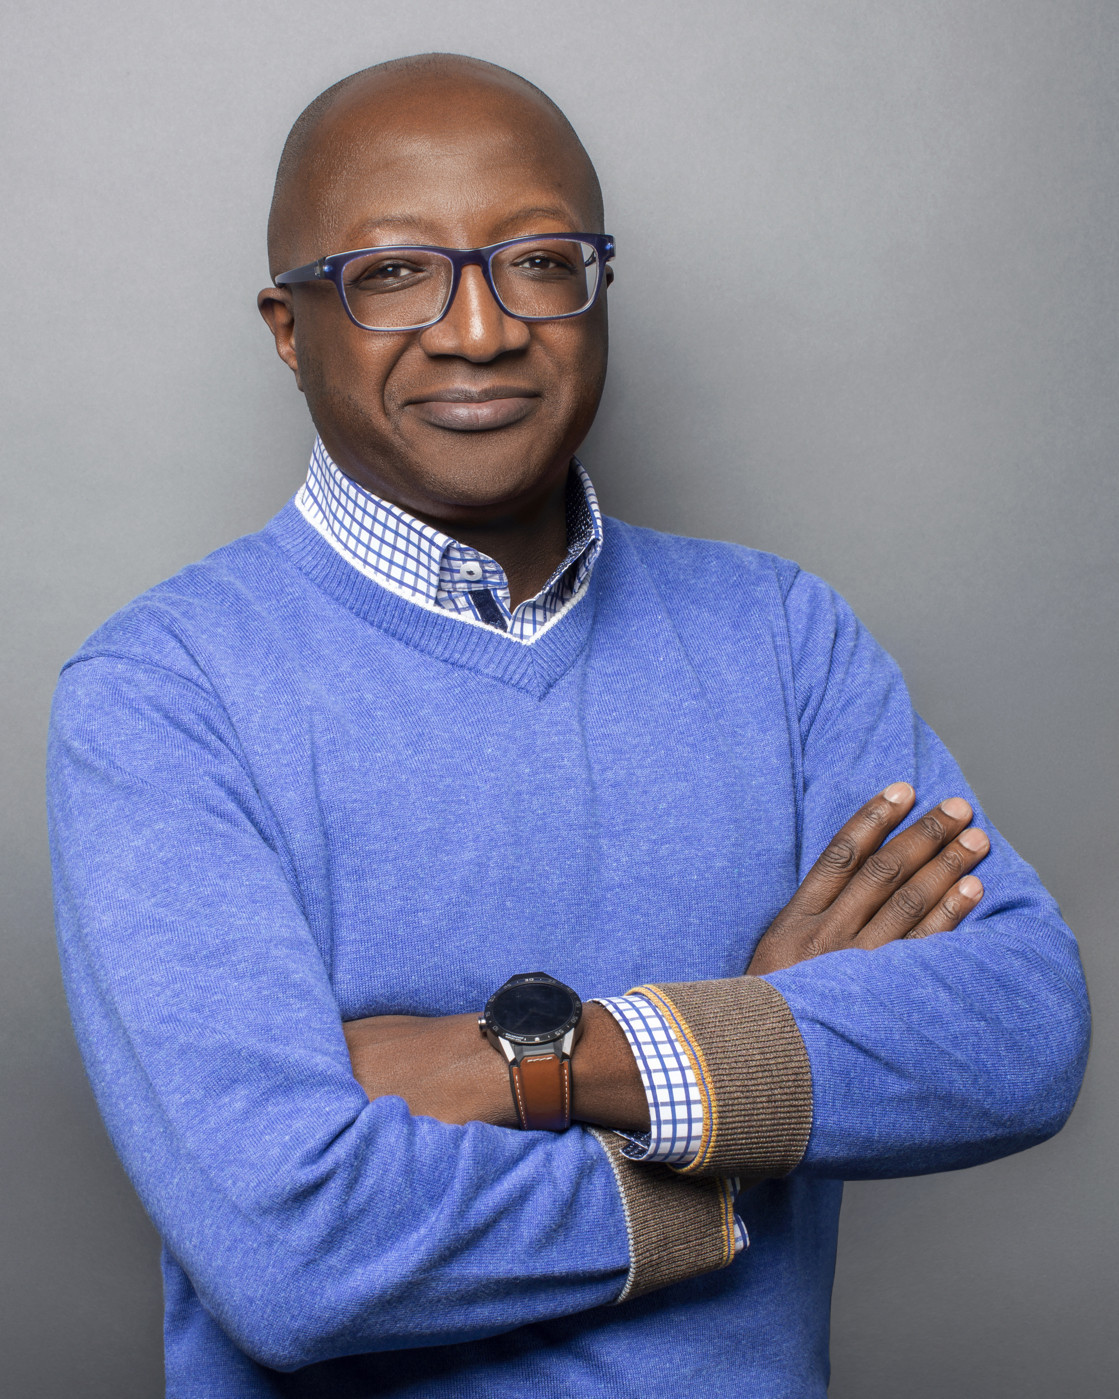 Kay Madati, Global Vice President and Head of Content Partnerships at Twitter is